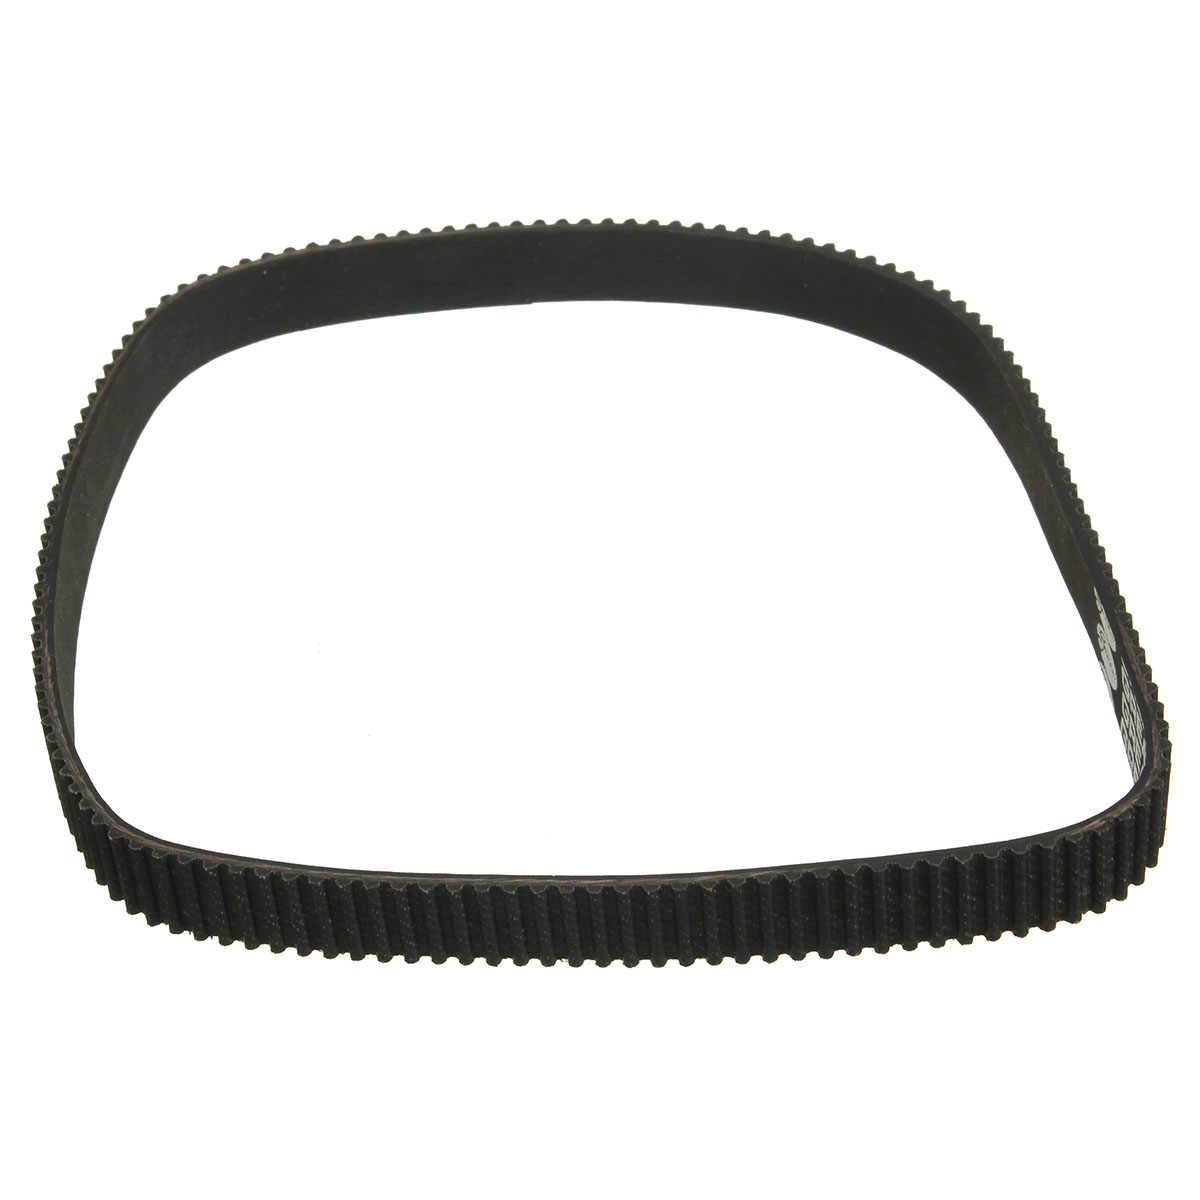 Replacement 3M-420-12 Black Rubber Driving Belt Round Belt Line Ring Electric Bike E-bike Scooter DIY